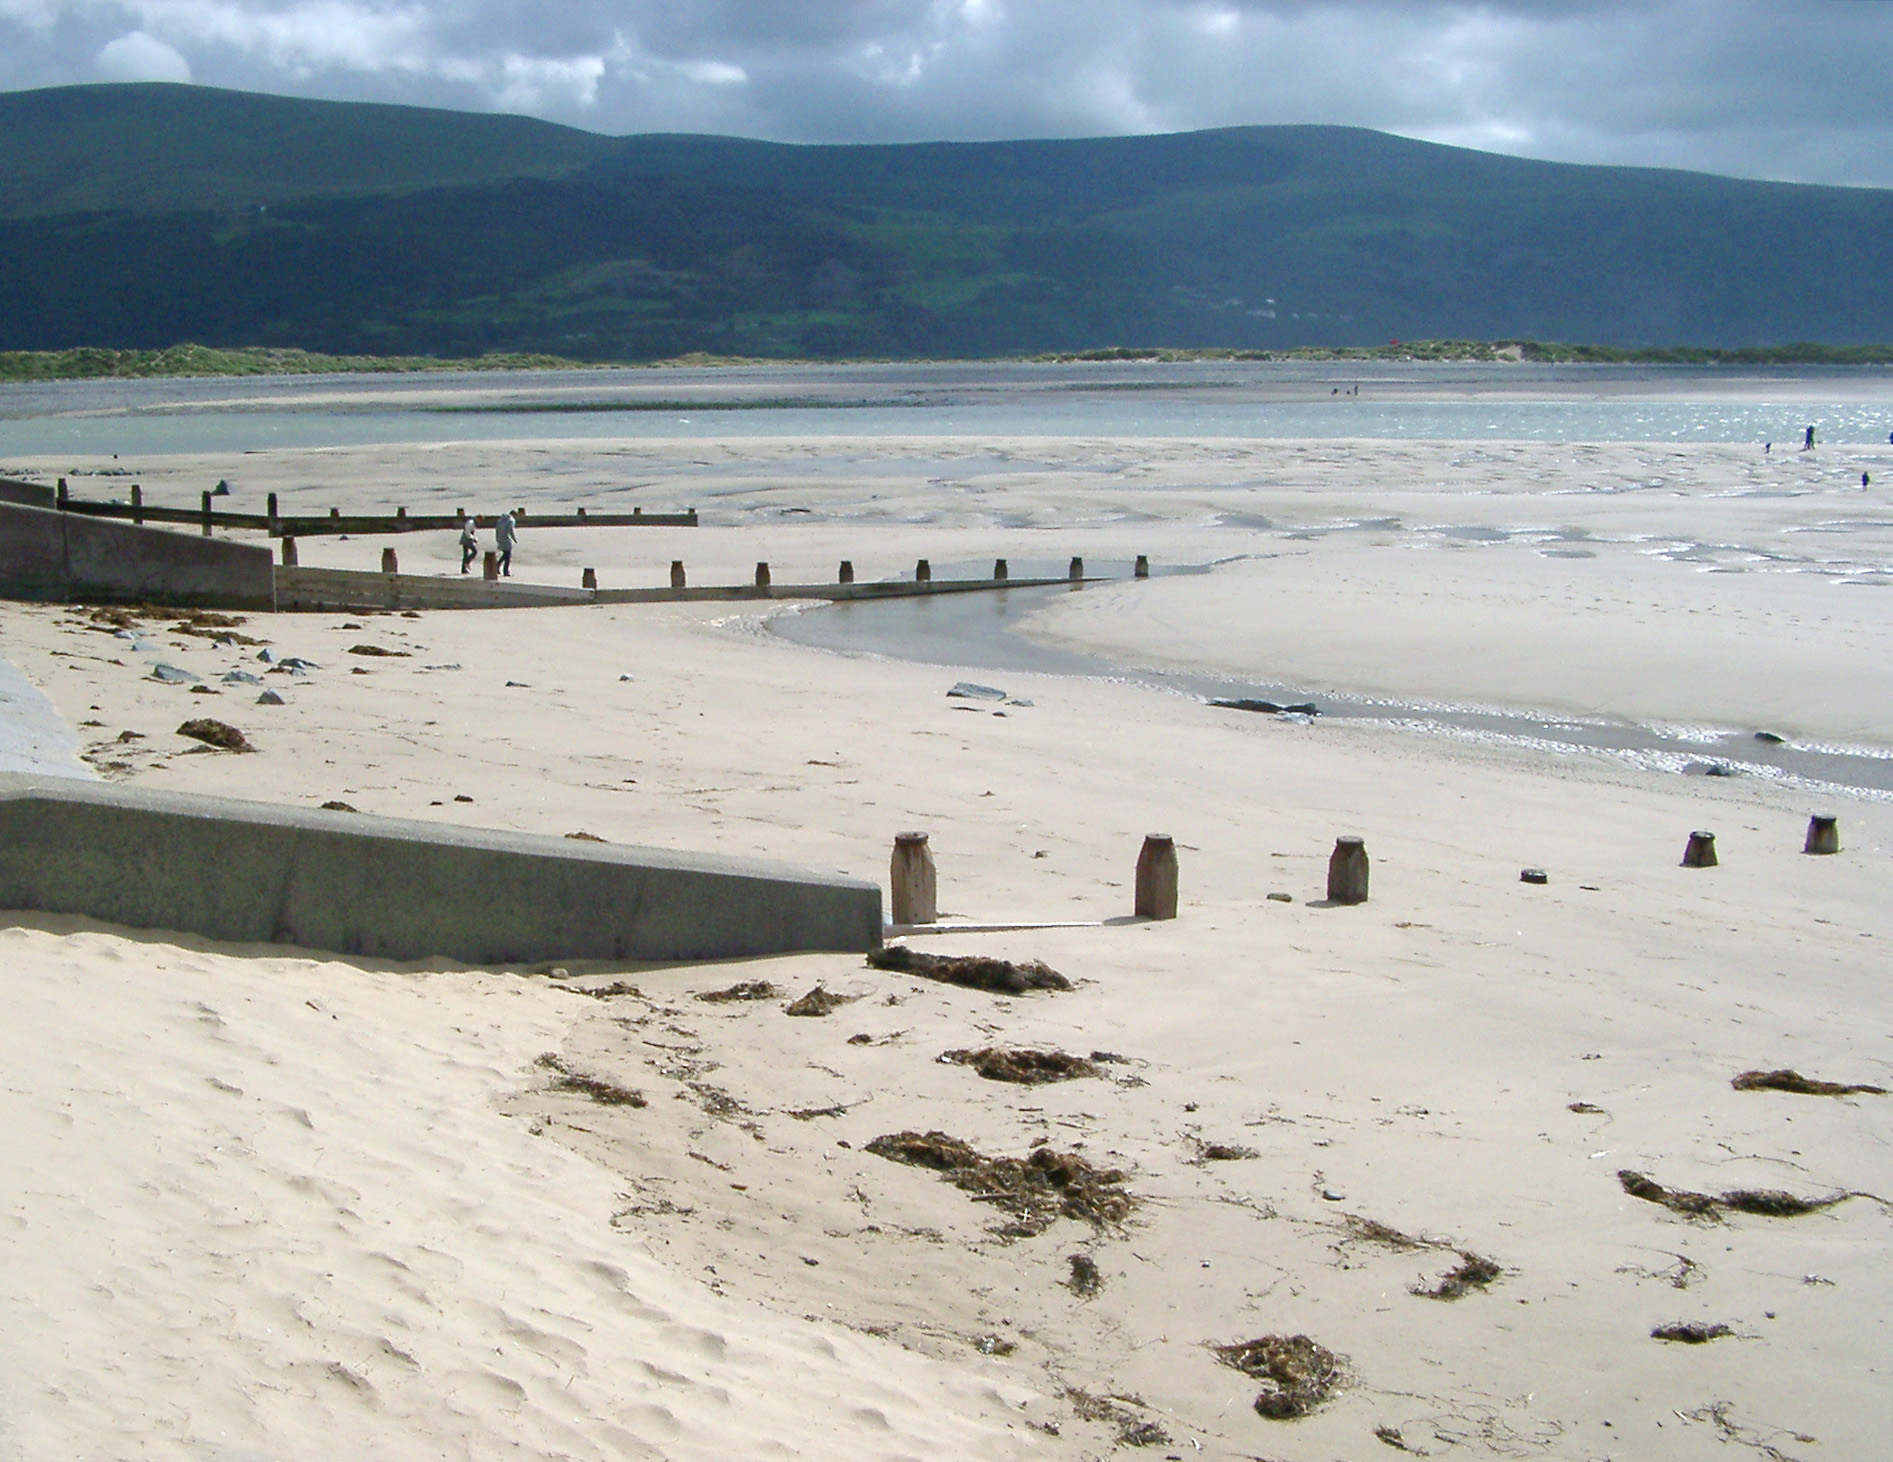 Wooden groynes in the sand on the beach at Barmouth, Wales built to control coastal erosion from the tides